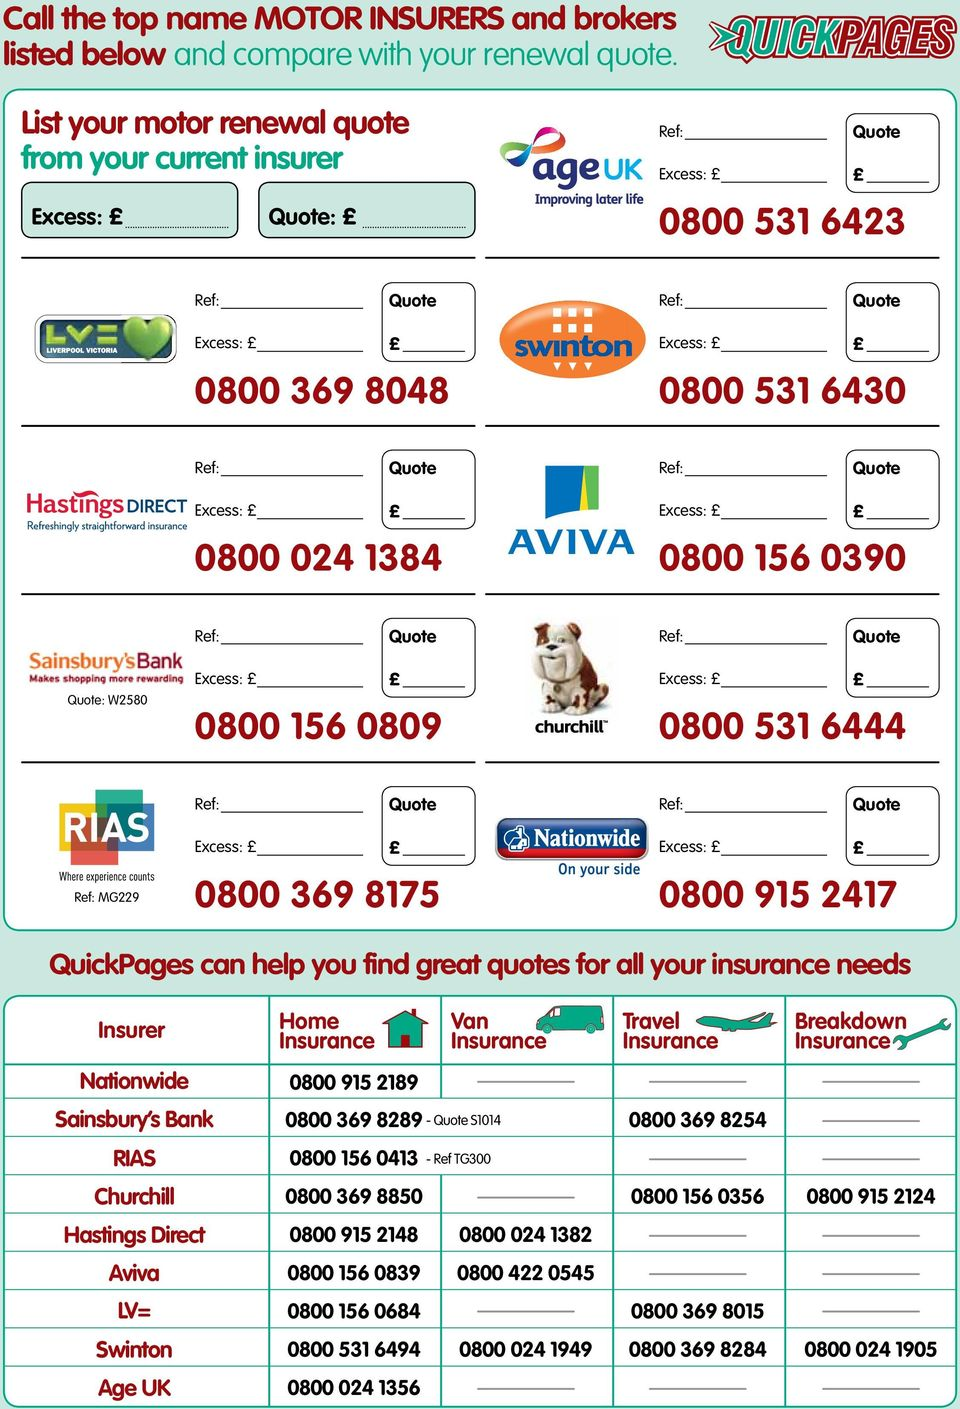 QuickPages can help you find great quotes for all your insurance needs Insurer Insurance Van Insurance Travel Insurance Breakdown Insurance Nationwide 0800 915 2189 Sainsbury s Bank 0800 369 8289